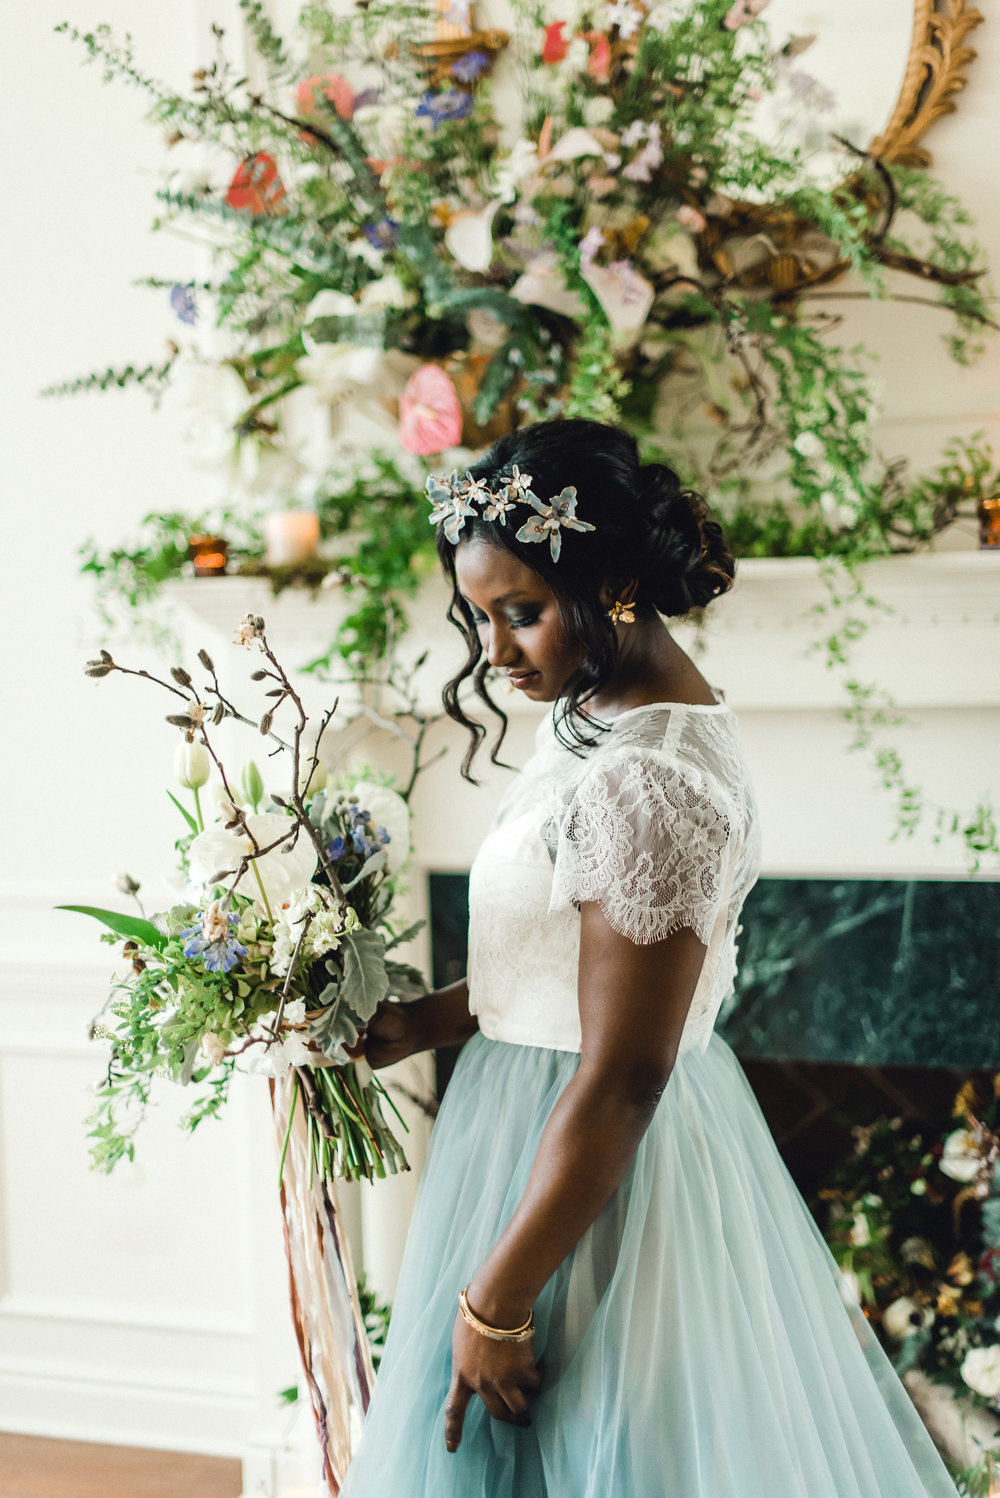 Bride poses in front of wedding decor at wedding venue for Pablo Neruda enchanting garden styled shoot planned by Exhale Events. Get inspired at exhale-events.com!